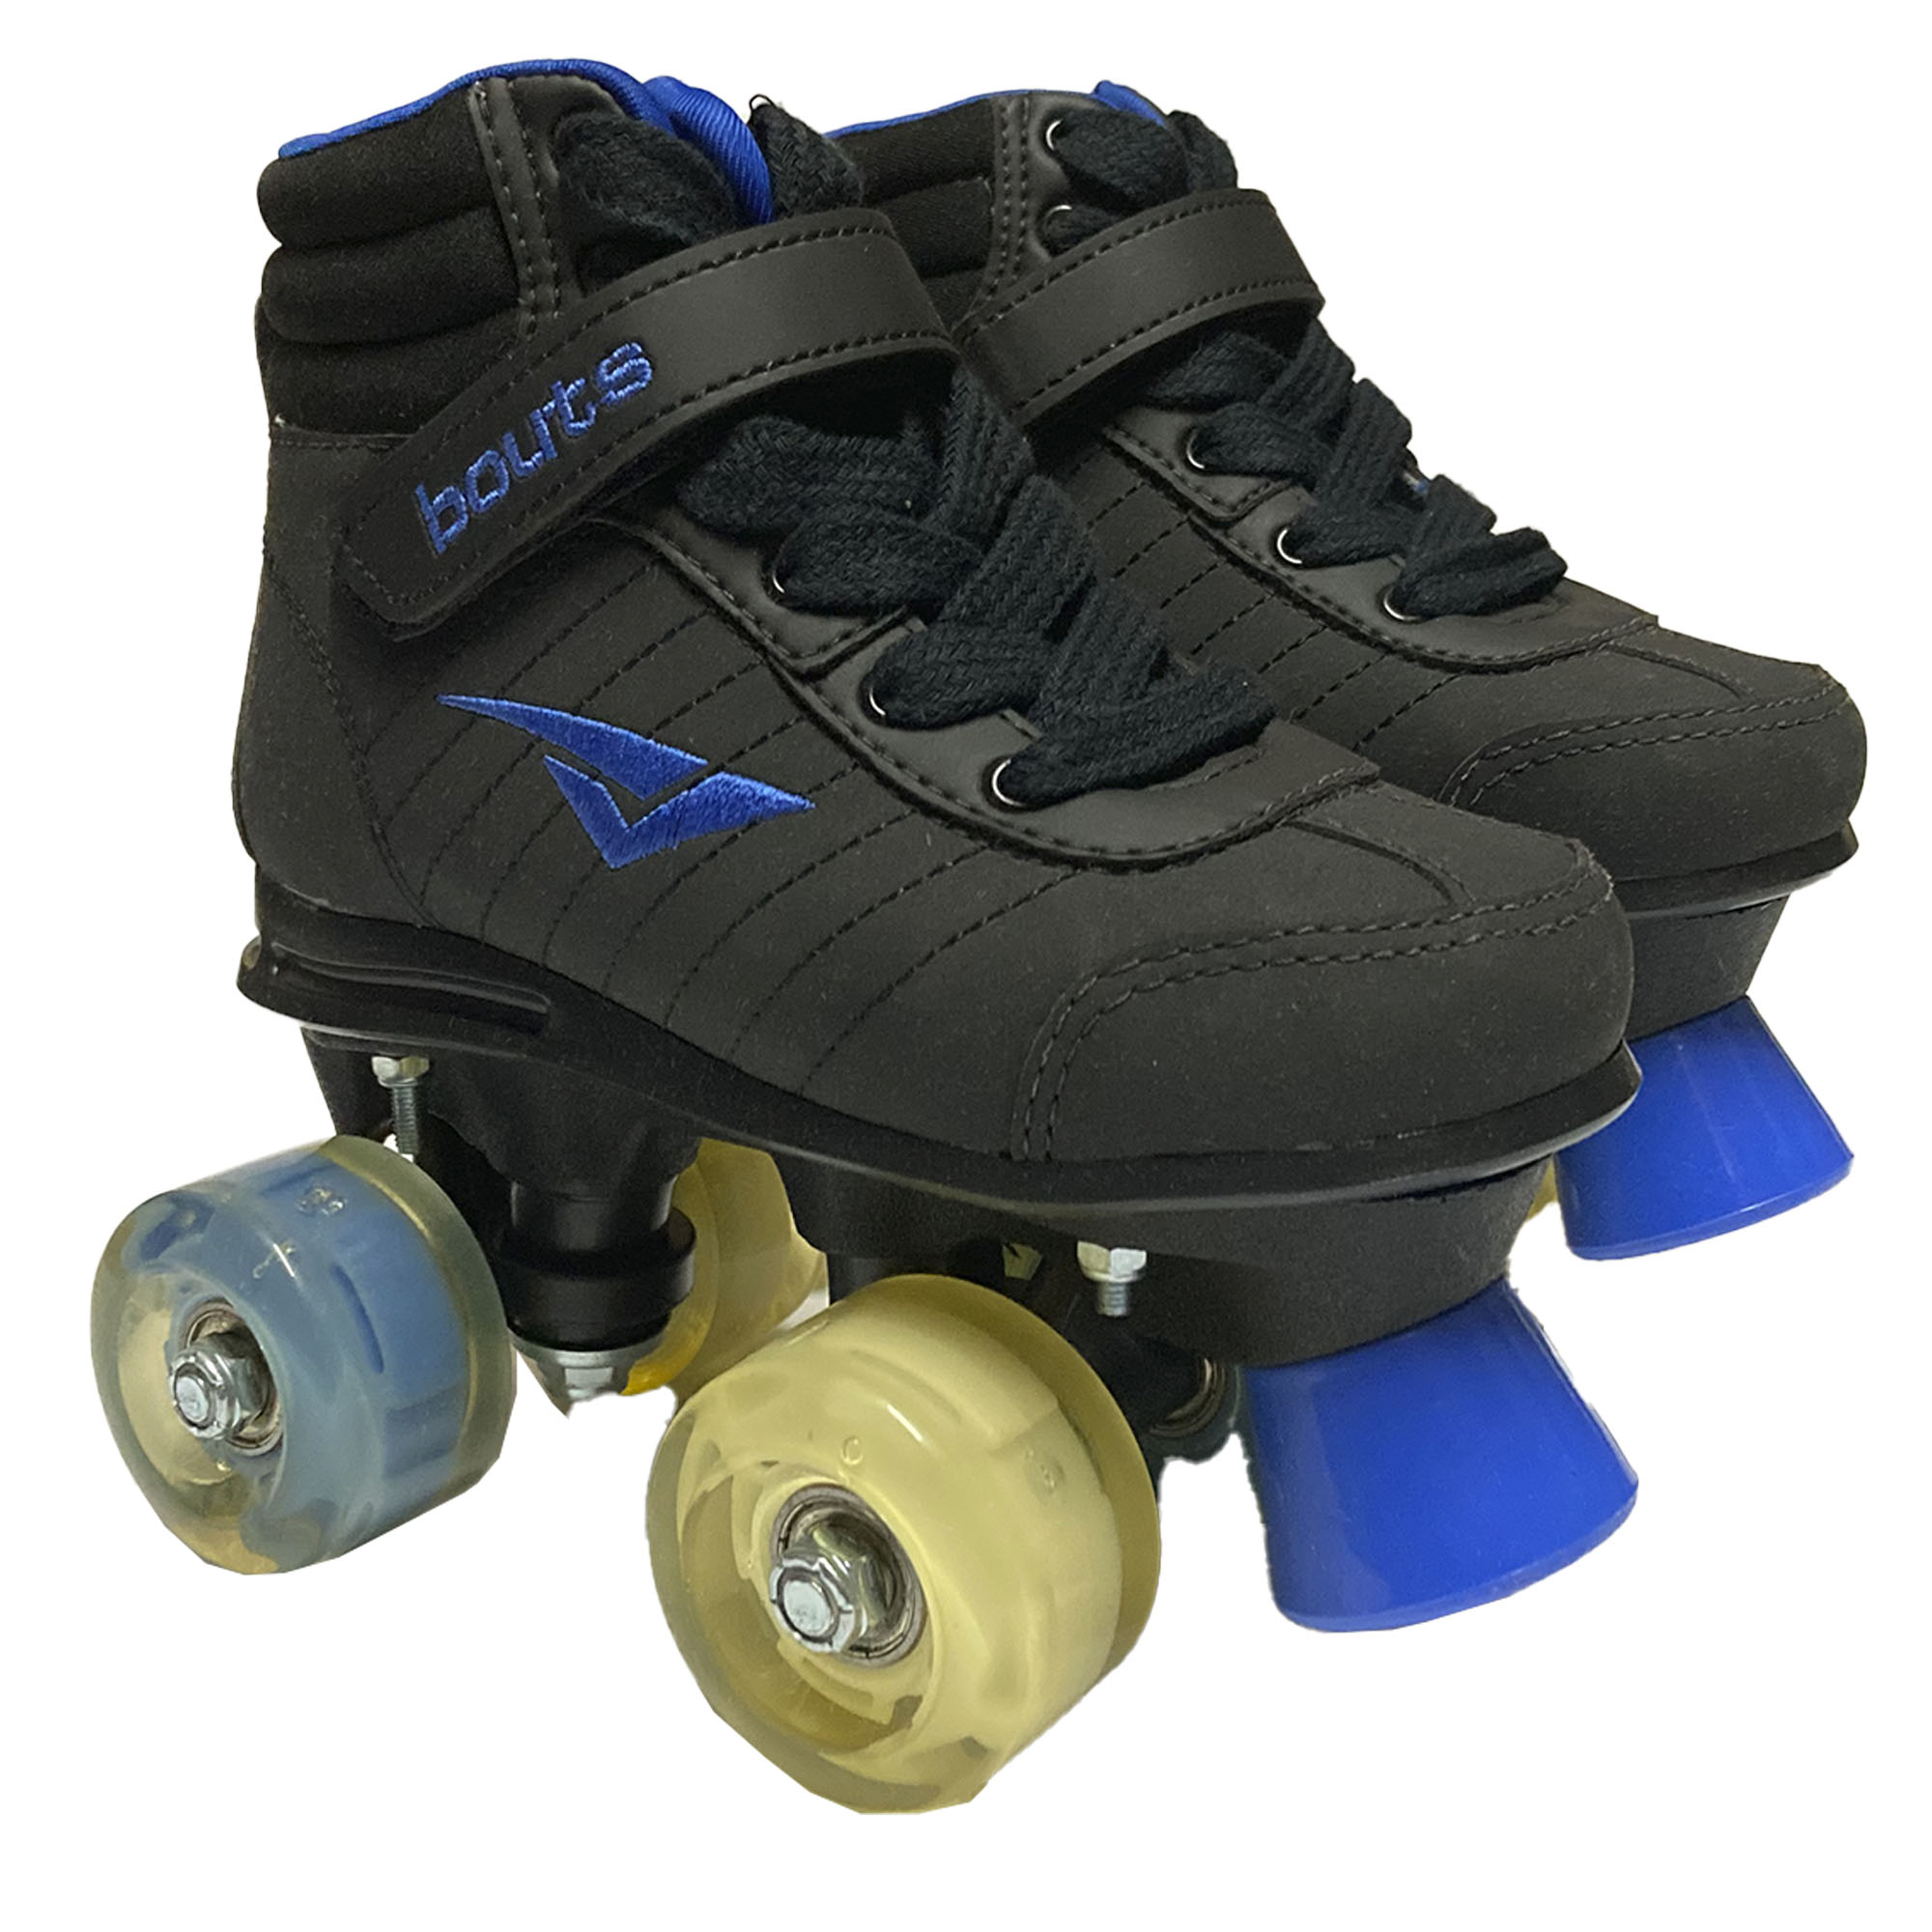 Patins Bouts Skid Led